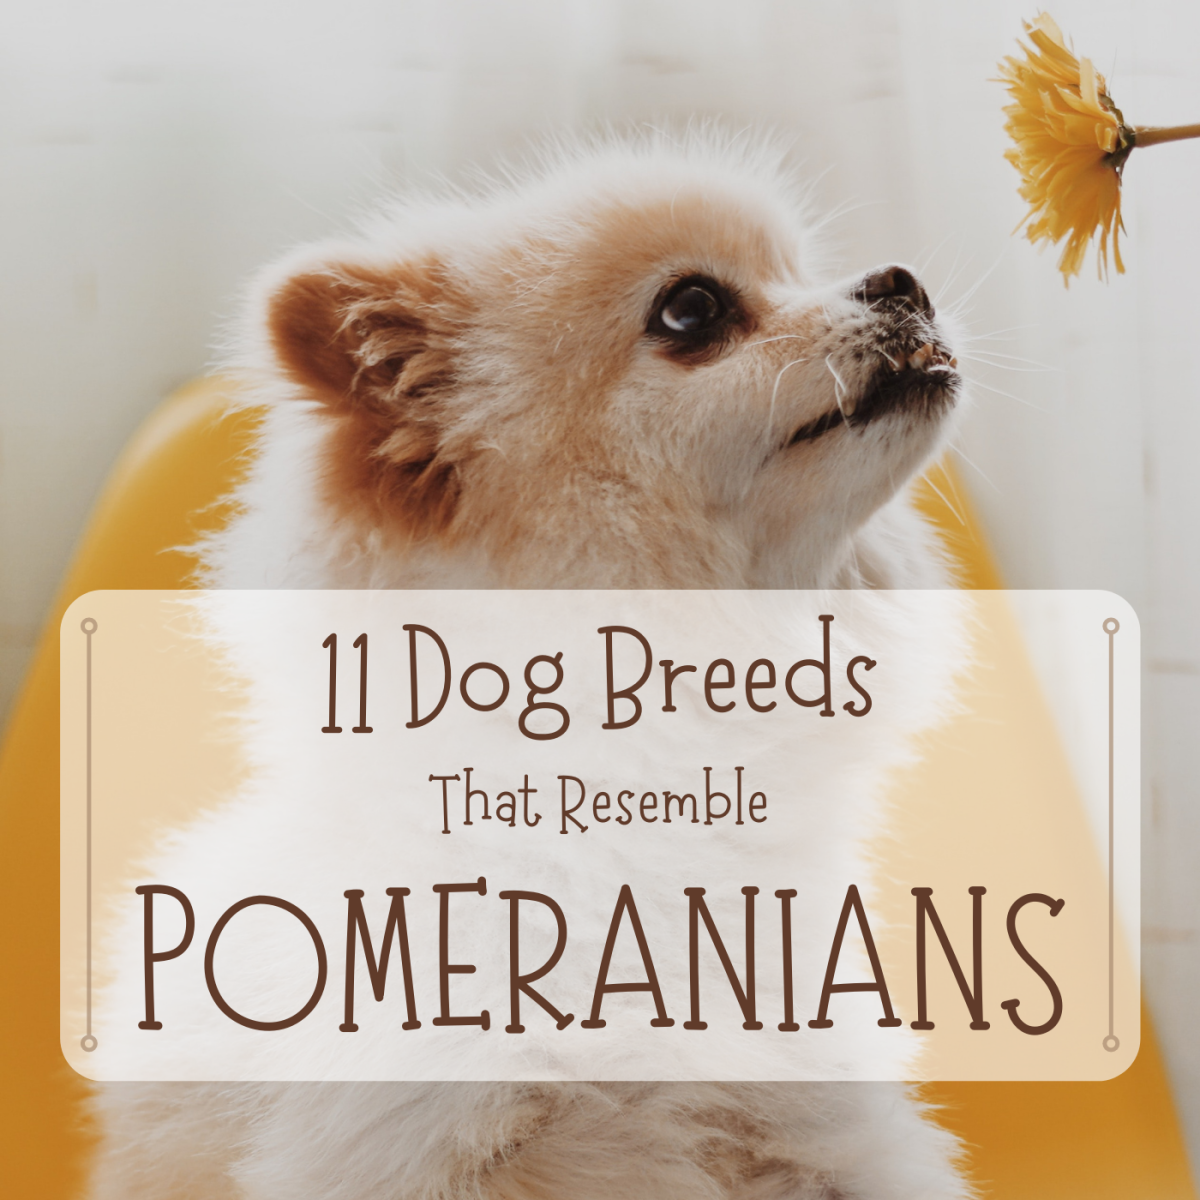 Do you want a dog that looks like a Pomeranian but is larger, smaller, hardier or otherwise a bit different? Consider these 11 breeds with similar appearances.